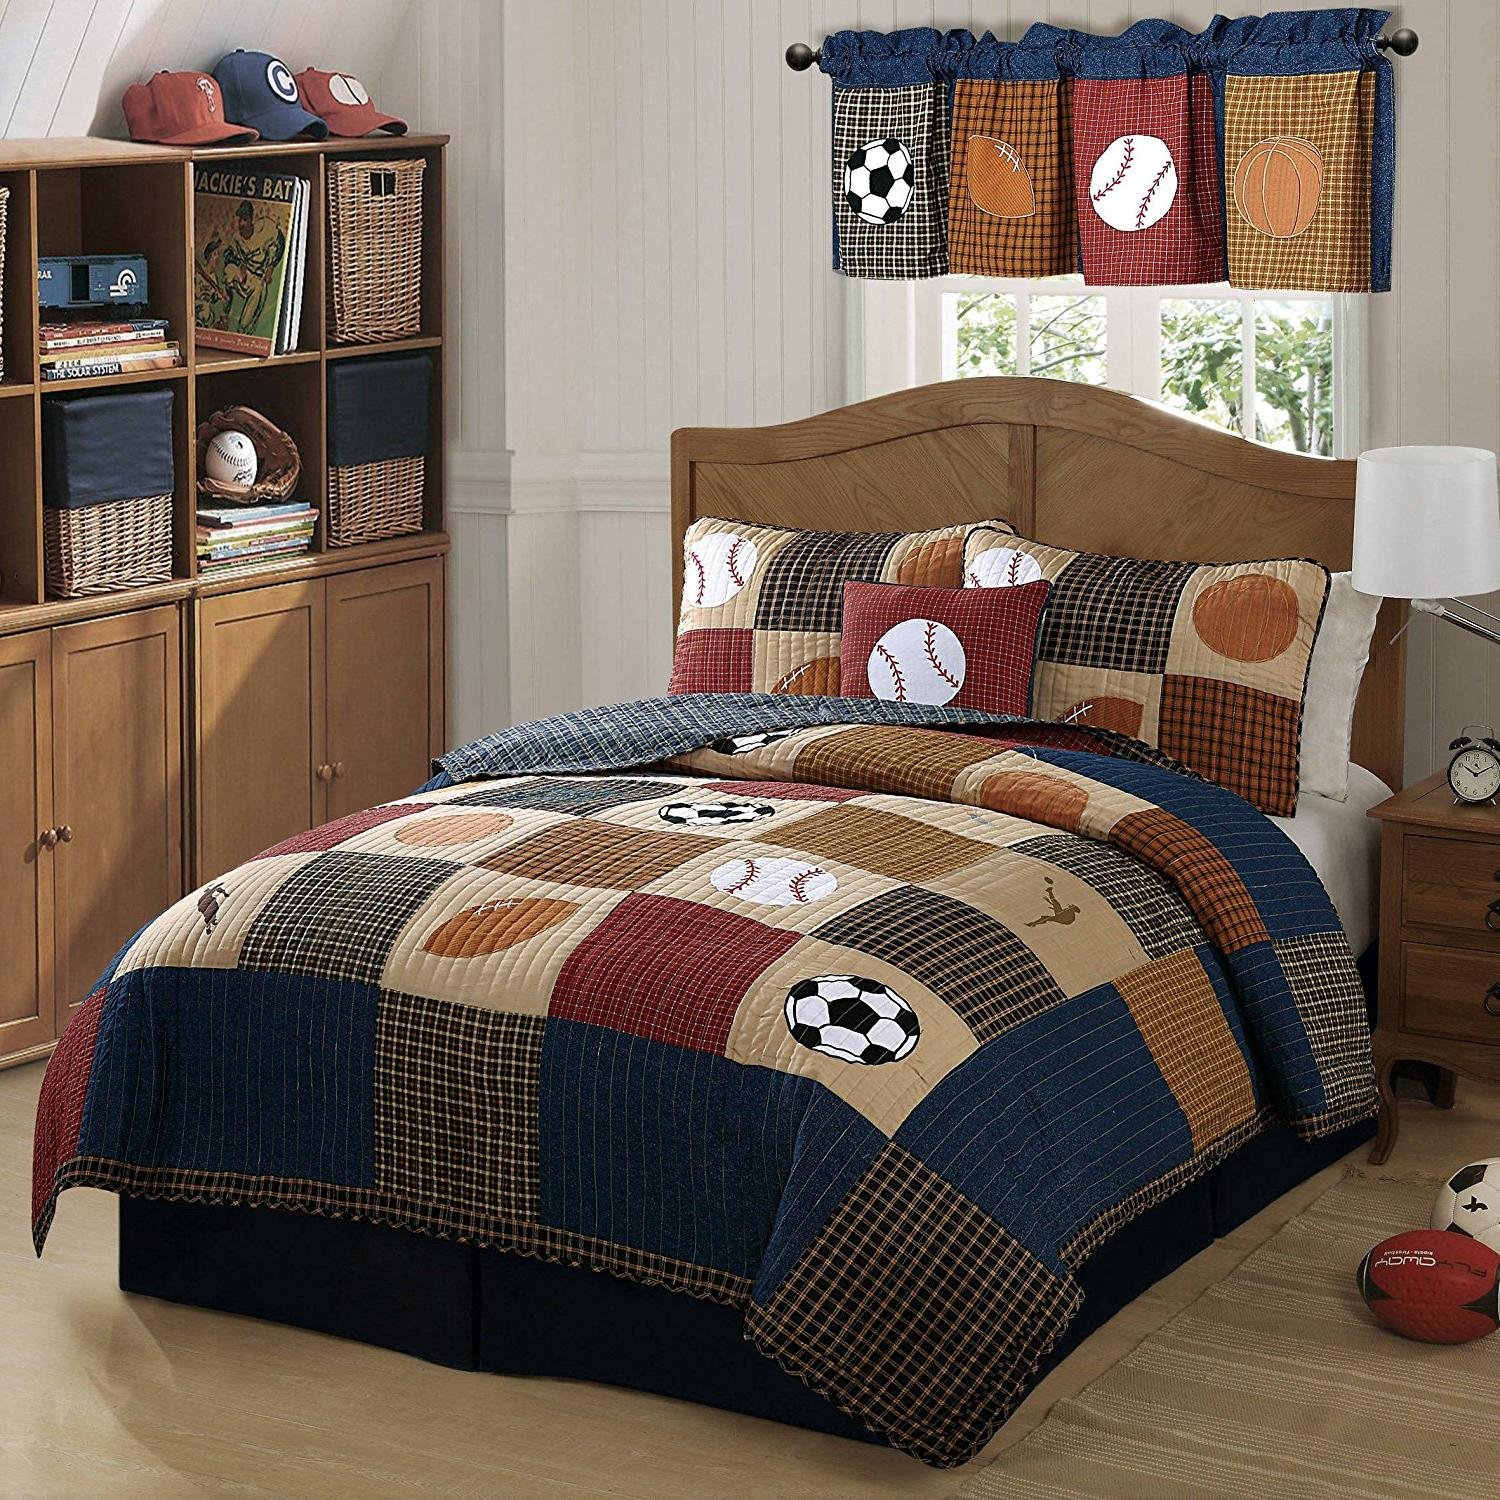 3pc Boys Tan Navy Red Brown Royal Blue Grey Full Queen Quilt Set, Sports Themed Bedding Patchwork Plaid Beige Basketball Soccer Football Baseball Stylish Fun Colorful Bold Athlete, Cotton